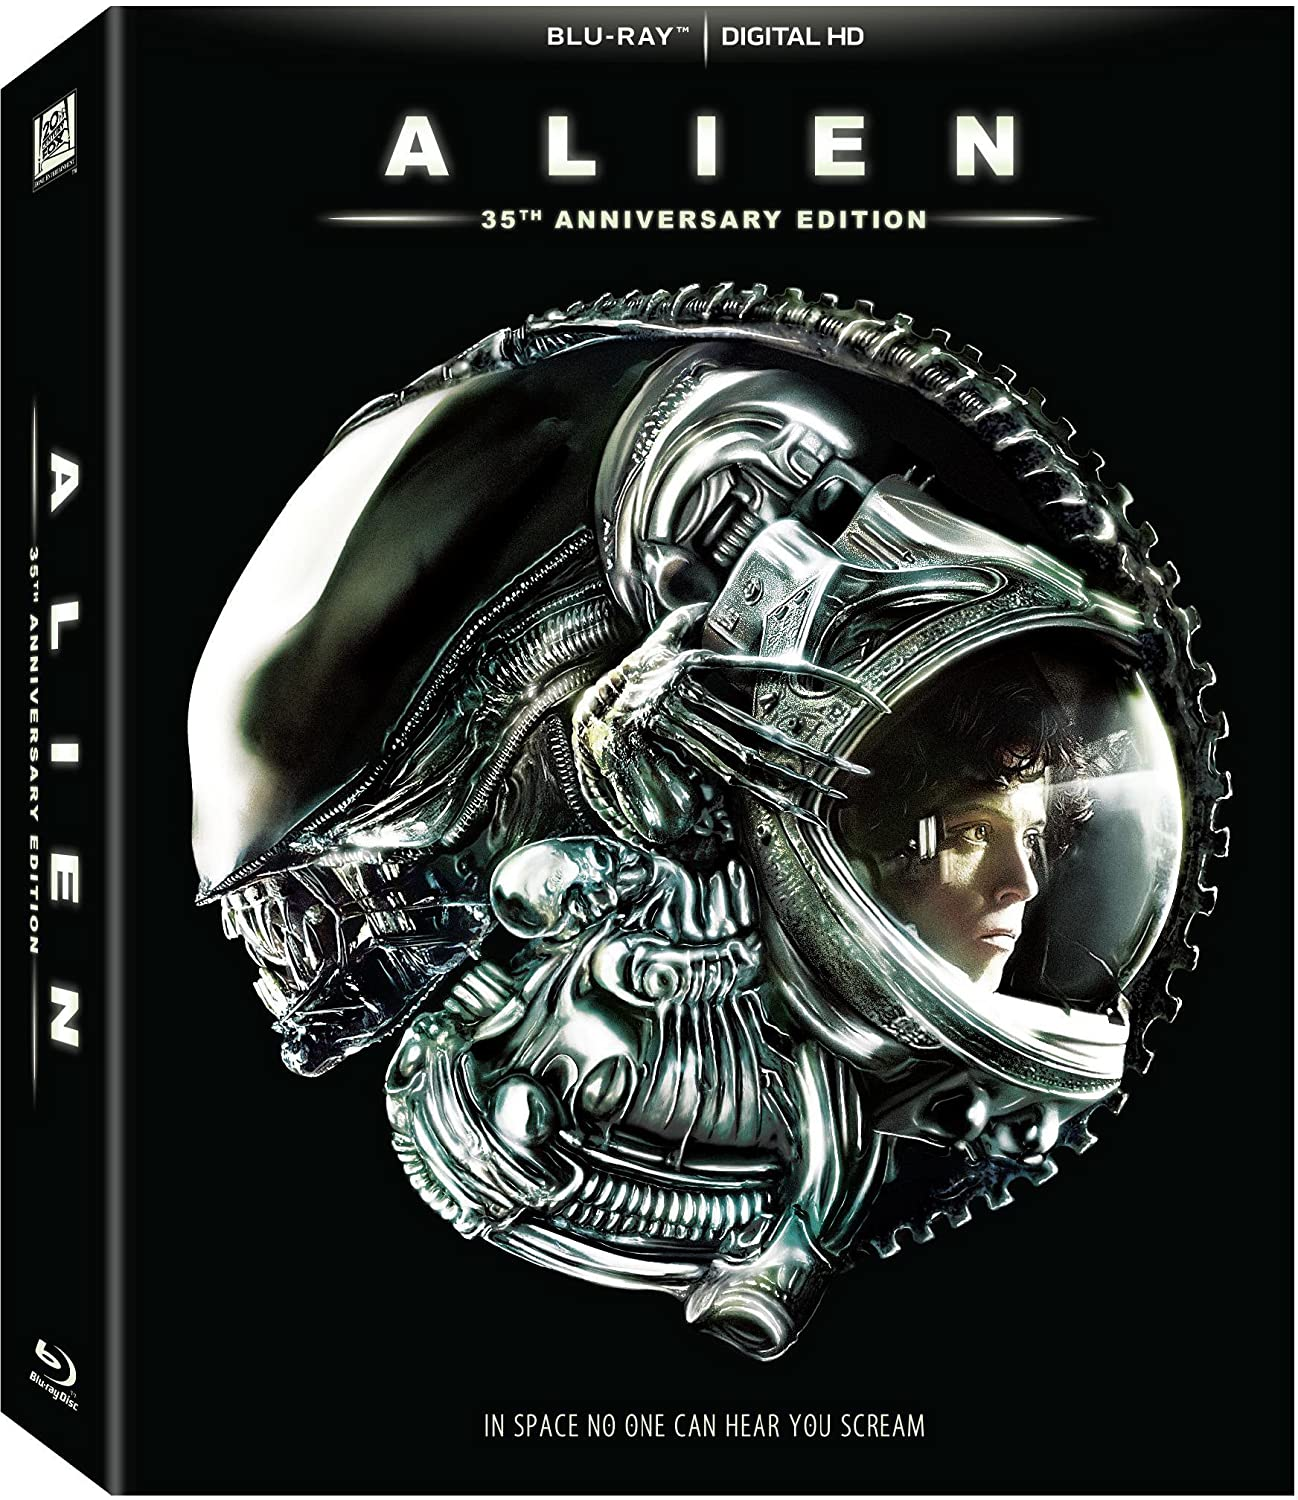 Alien (35th Anniversary) [Blu-ray] [Italia]: Amazon.es: Tom Skerritt, Nick Allder, Peter Baldock, Sigourney Weaver, Adrian Biddle, Veronica Cartwright, Alan Bryce, Harry Dean Stanton, John Hurt, Gordon Carroll, Ian Holm, Yaphet Kotto, Roger